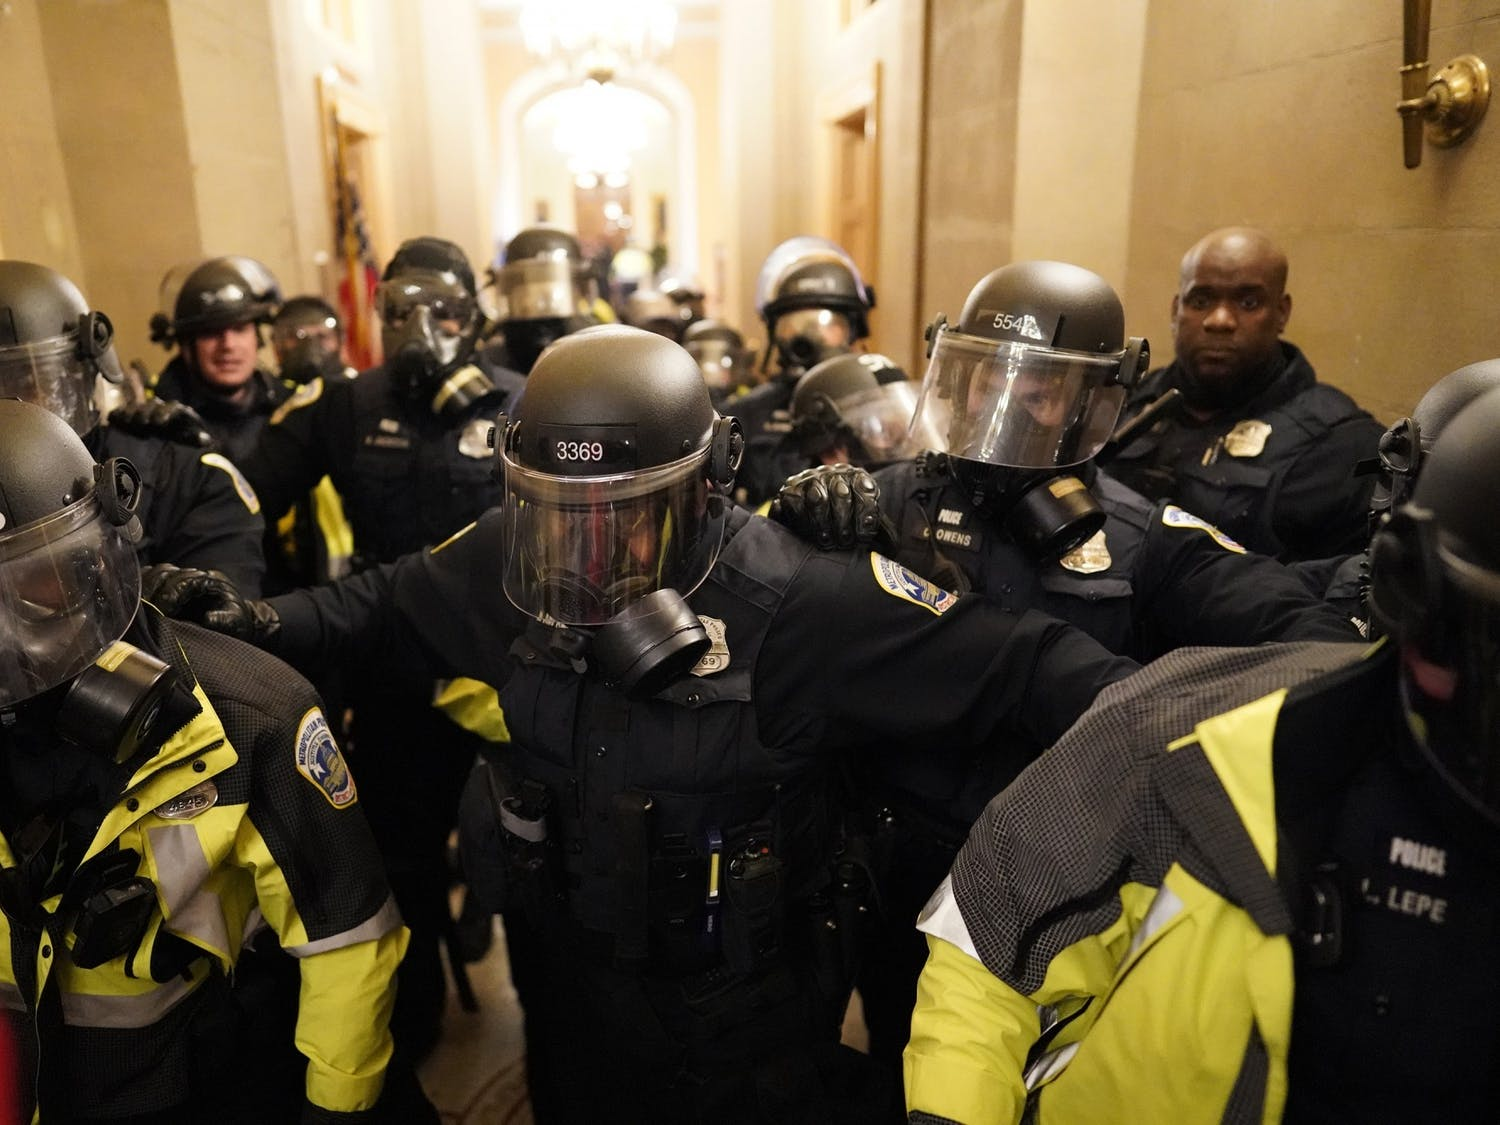 Riot police clear the hallway inside the U.S. Capitol on Jan. 6, 2021, in Washington, D.C. Photo courtesy of Kent Nishimura/Los Angeles Times/TNS